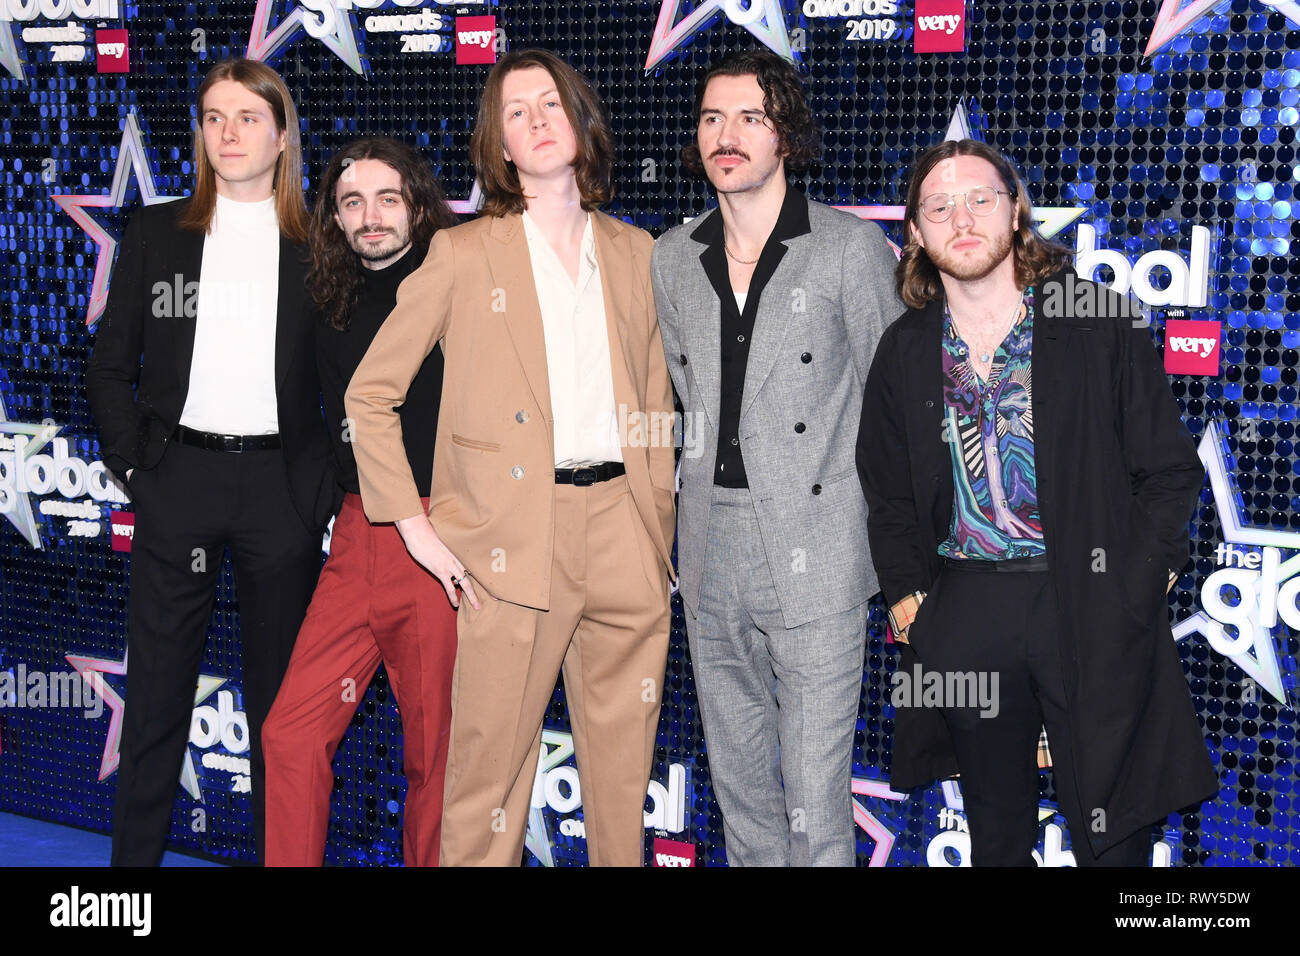 London, UK. 07th Mar, 2019. LONDON, UK. March 07, 2019: Blossoms arriving for the Global Awards 2019 at the Hammersmith Apollo, London. Picture: Steve Vas/Featureflash Credit: Paul Smith/Alamy Live News - Stock Image